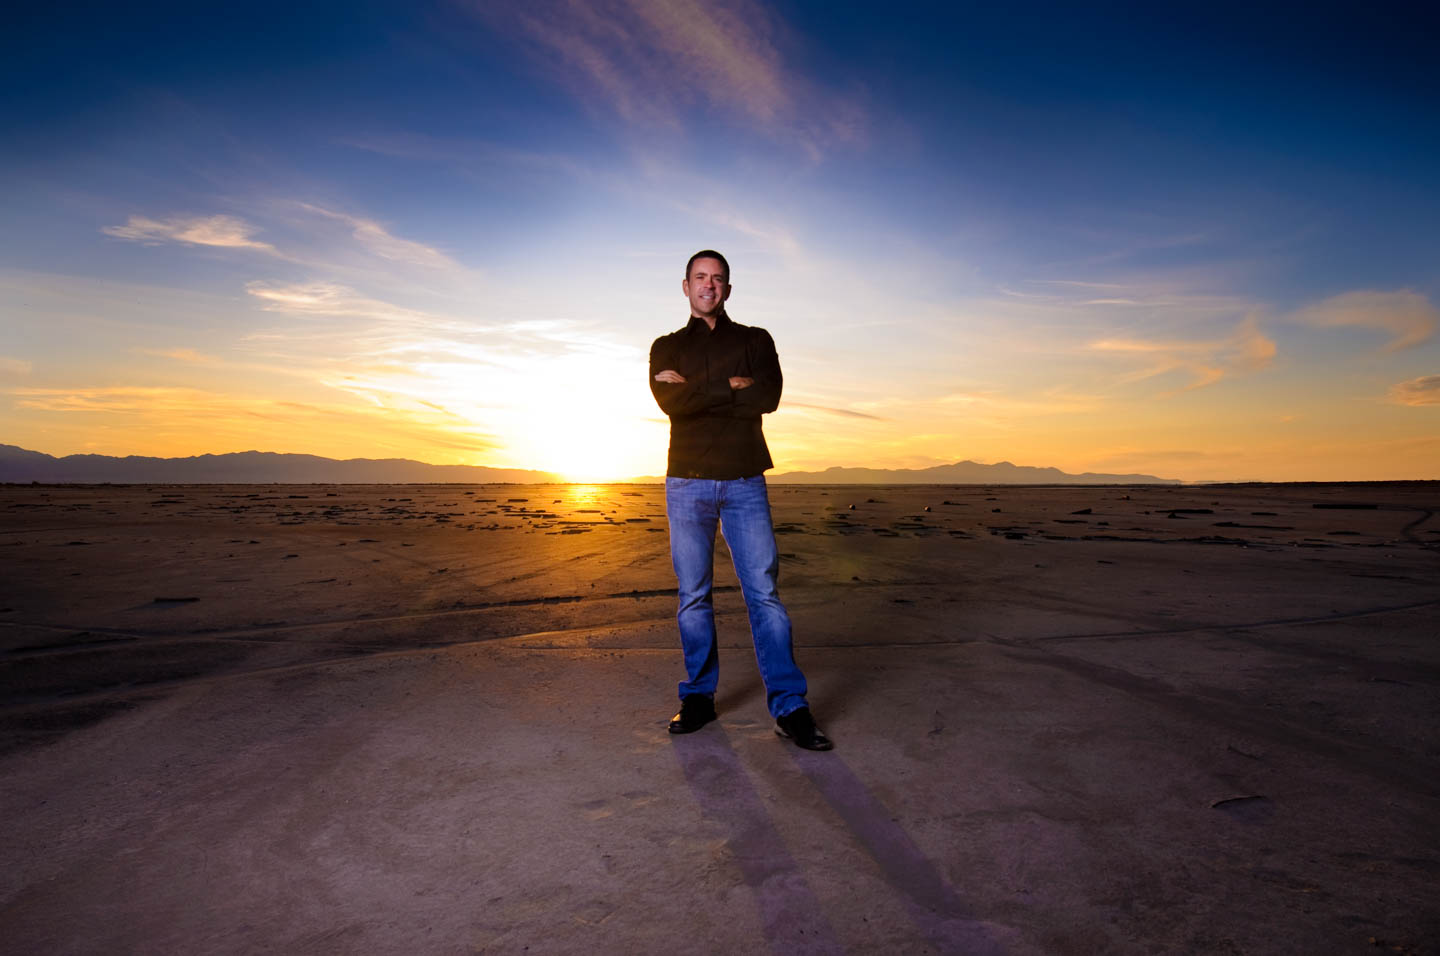 Jay by the Great Salt Lake for a sunset photo shoot